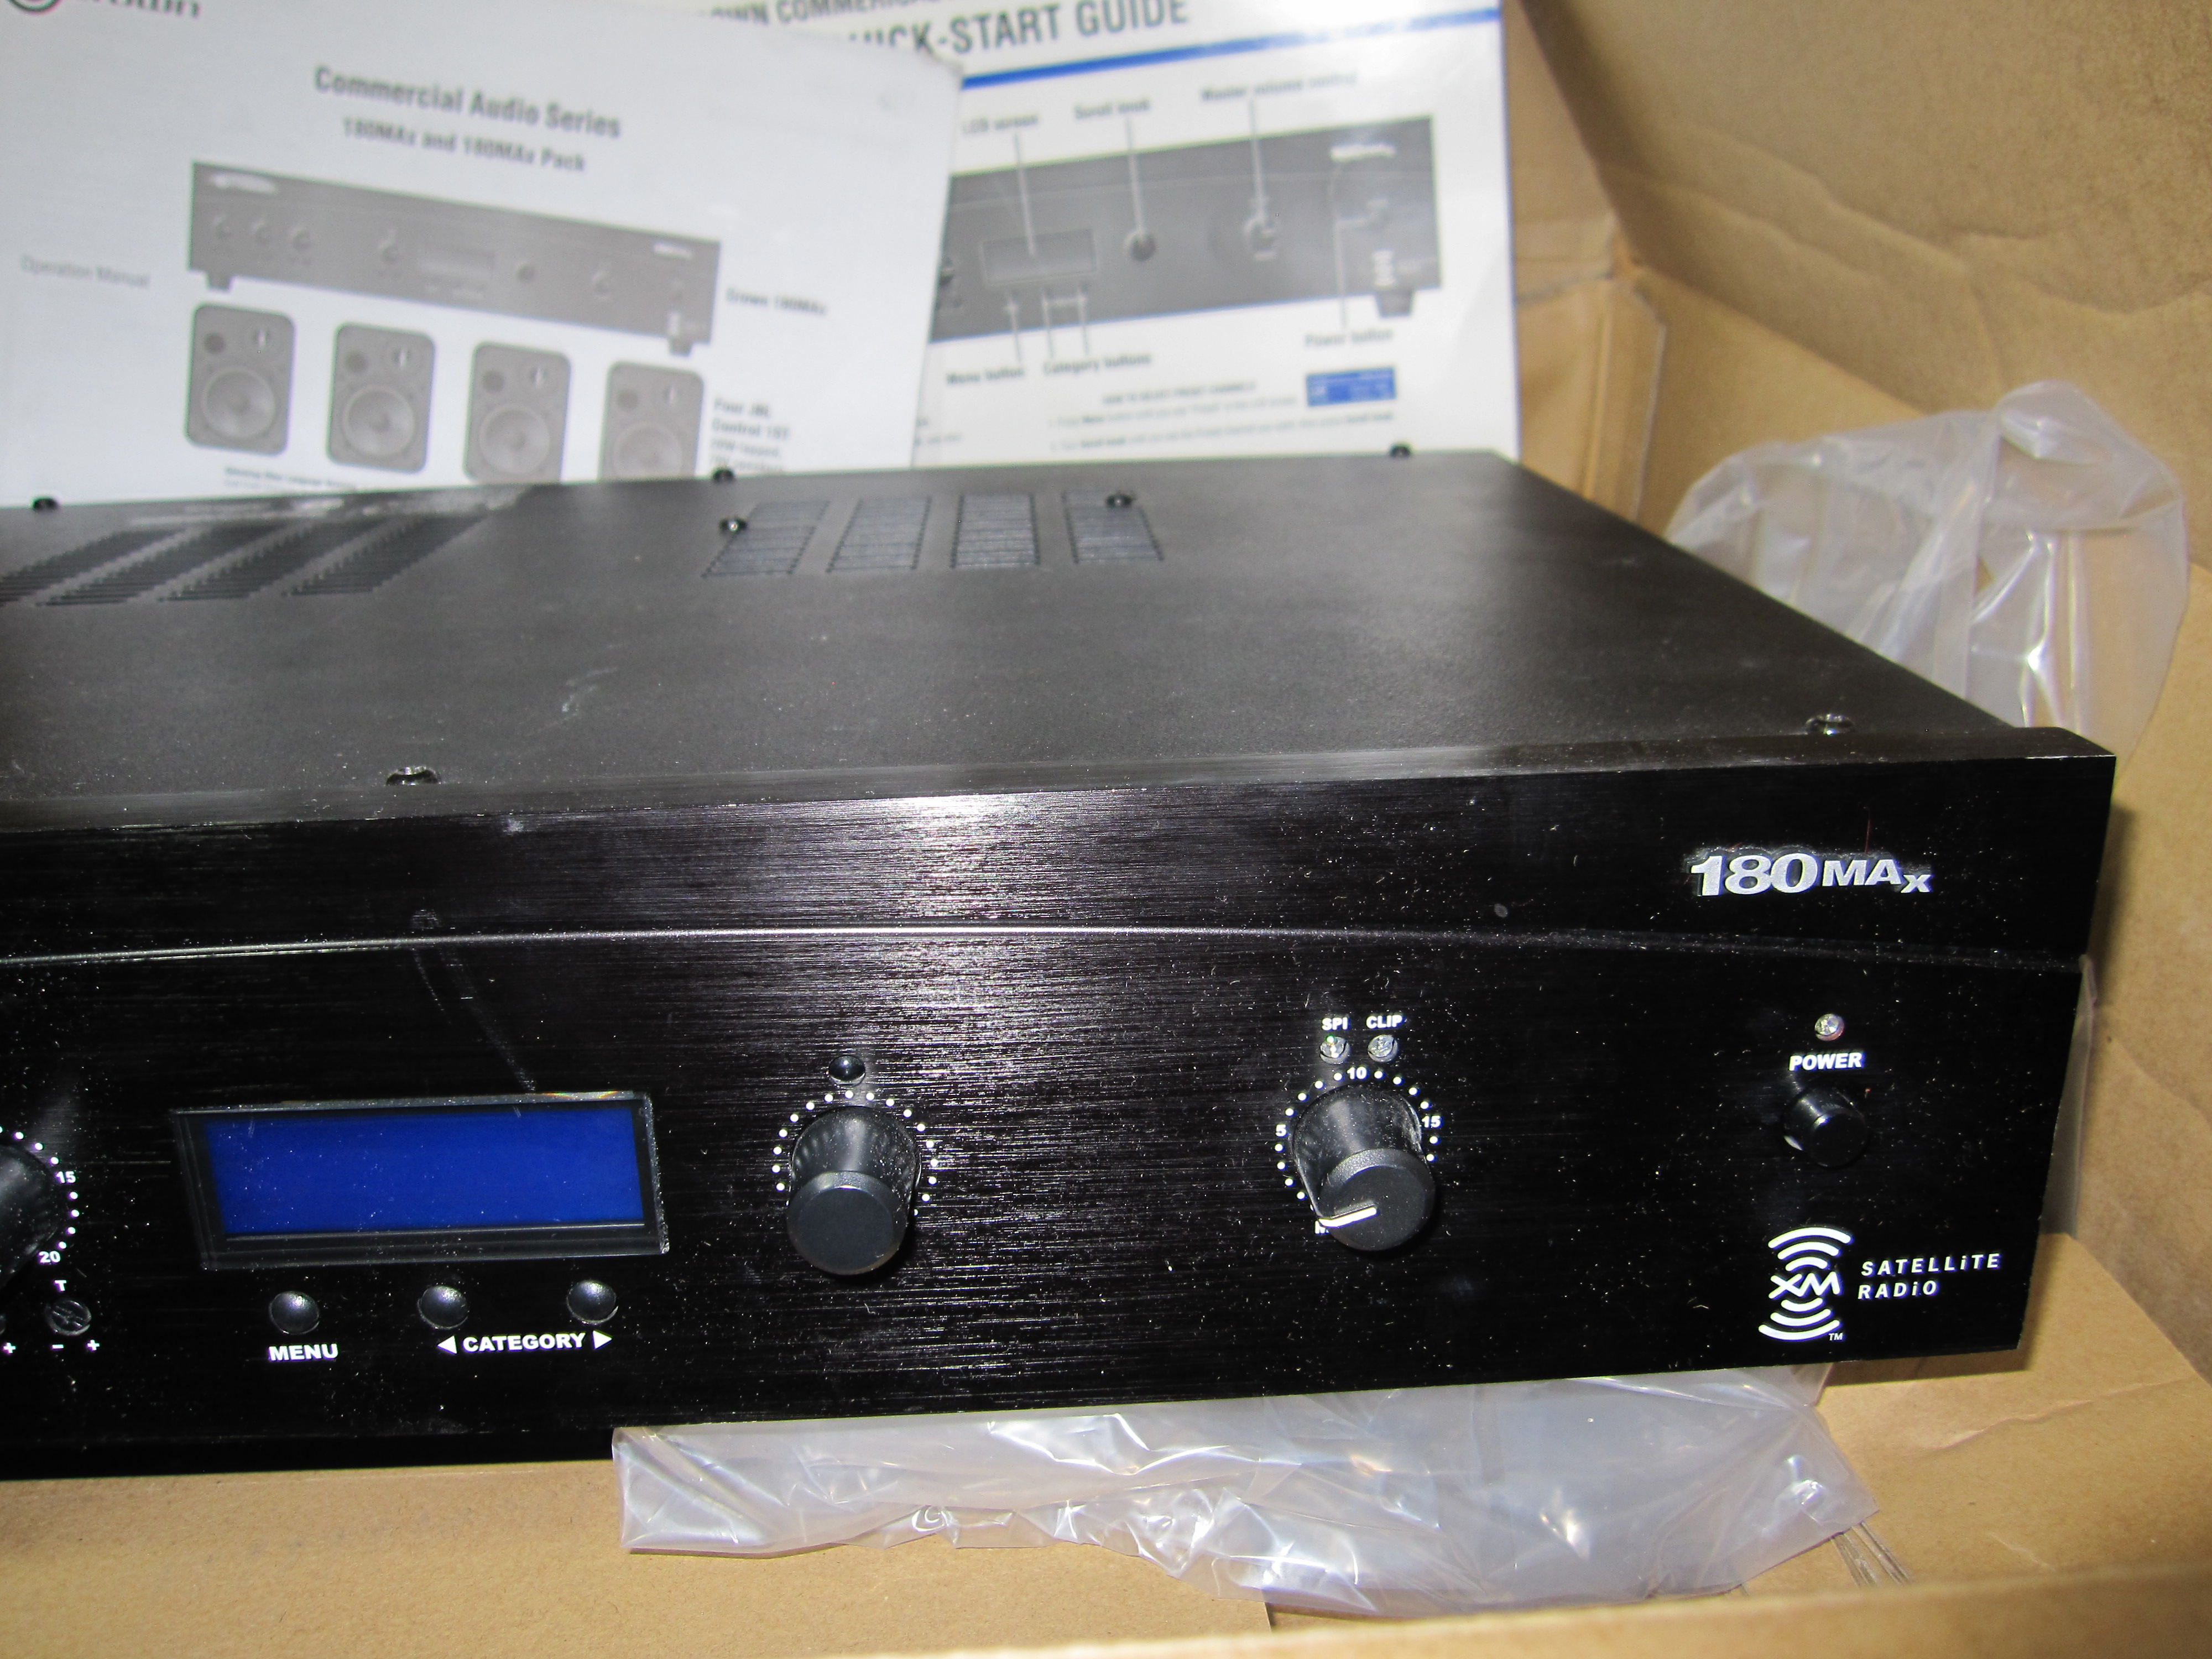 Crown 180max commercial audio mixeramplifier with xm radio tuner crown 180max commercial audio mixeramplifier with xm radio tuner sciox Choice Image